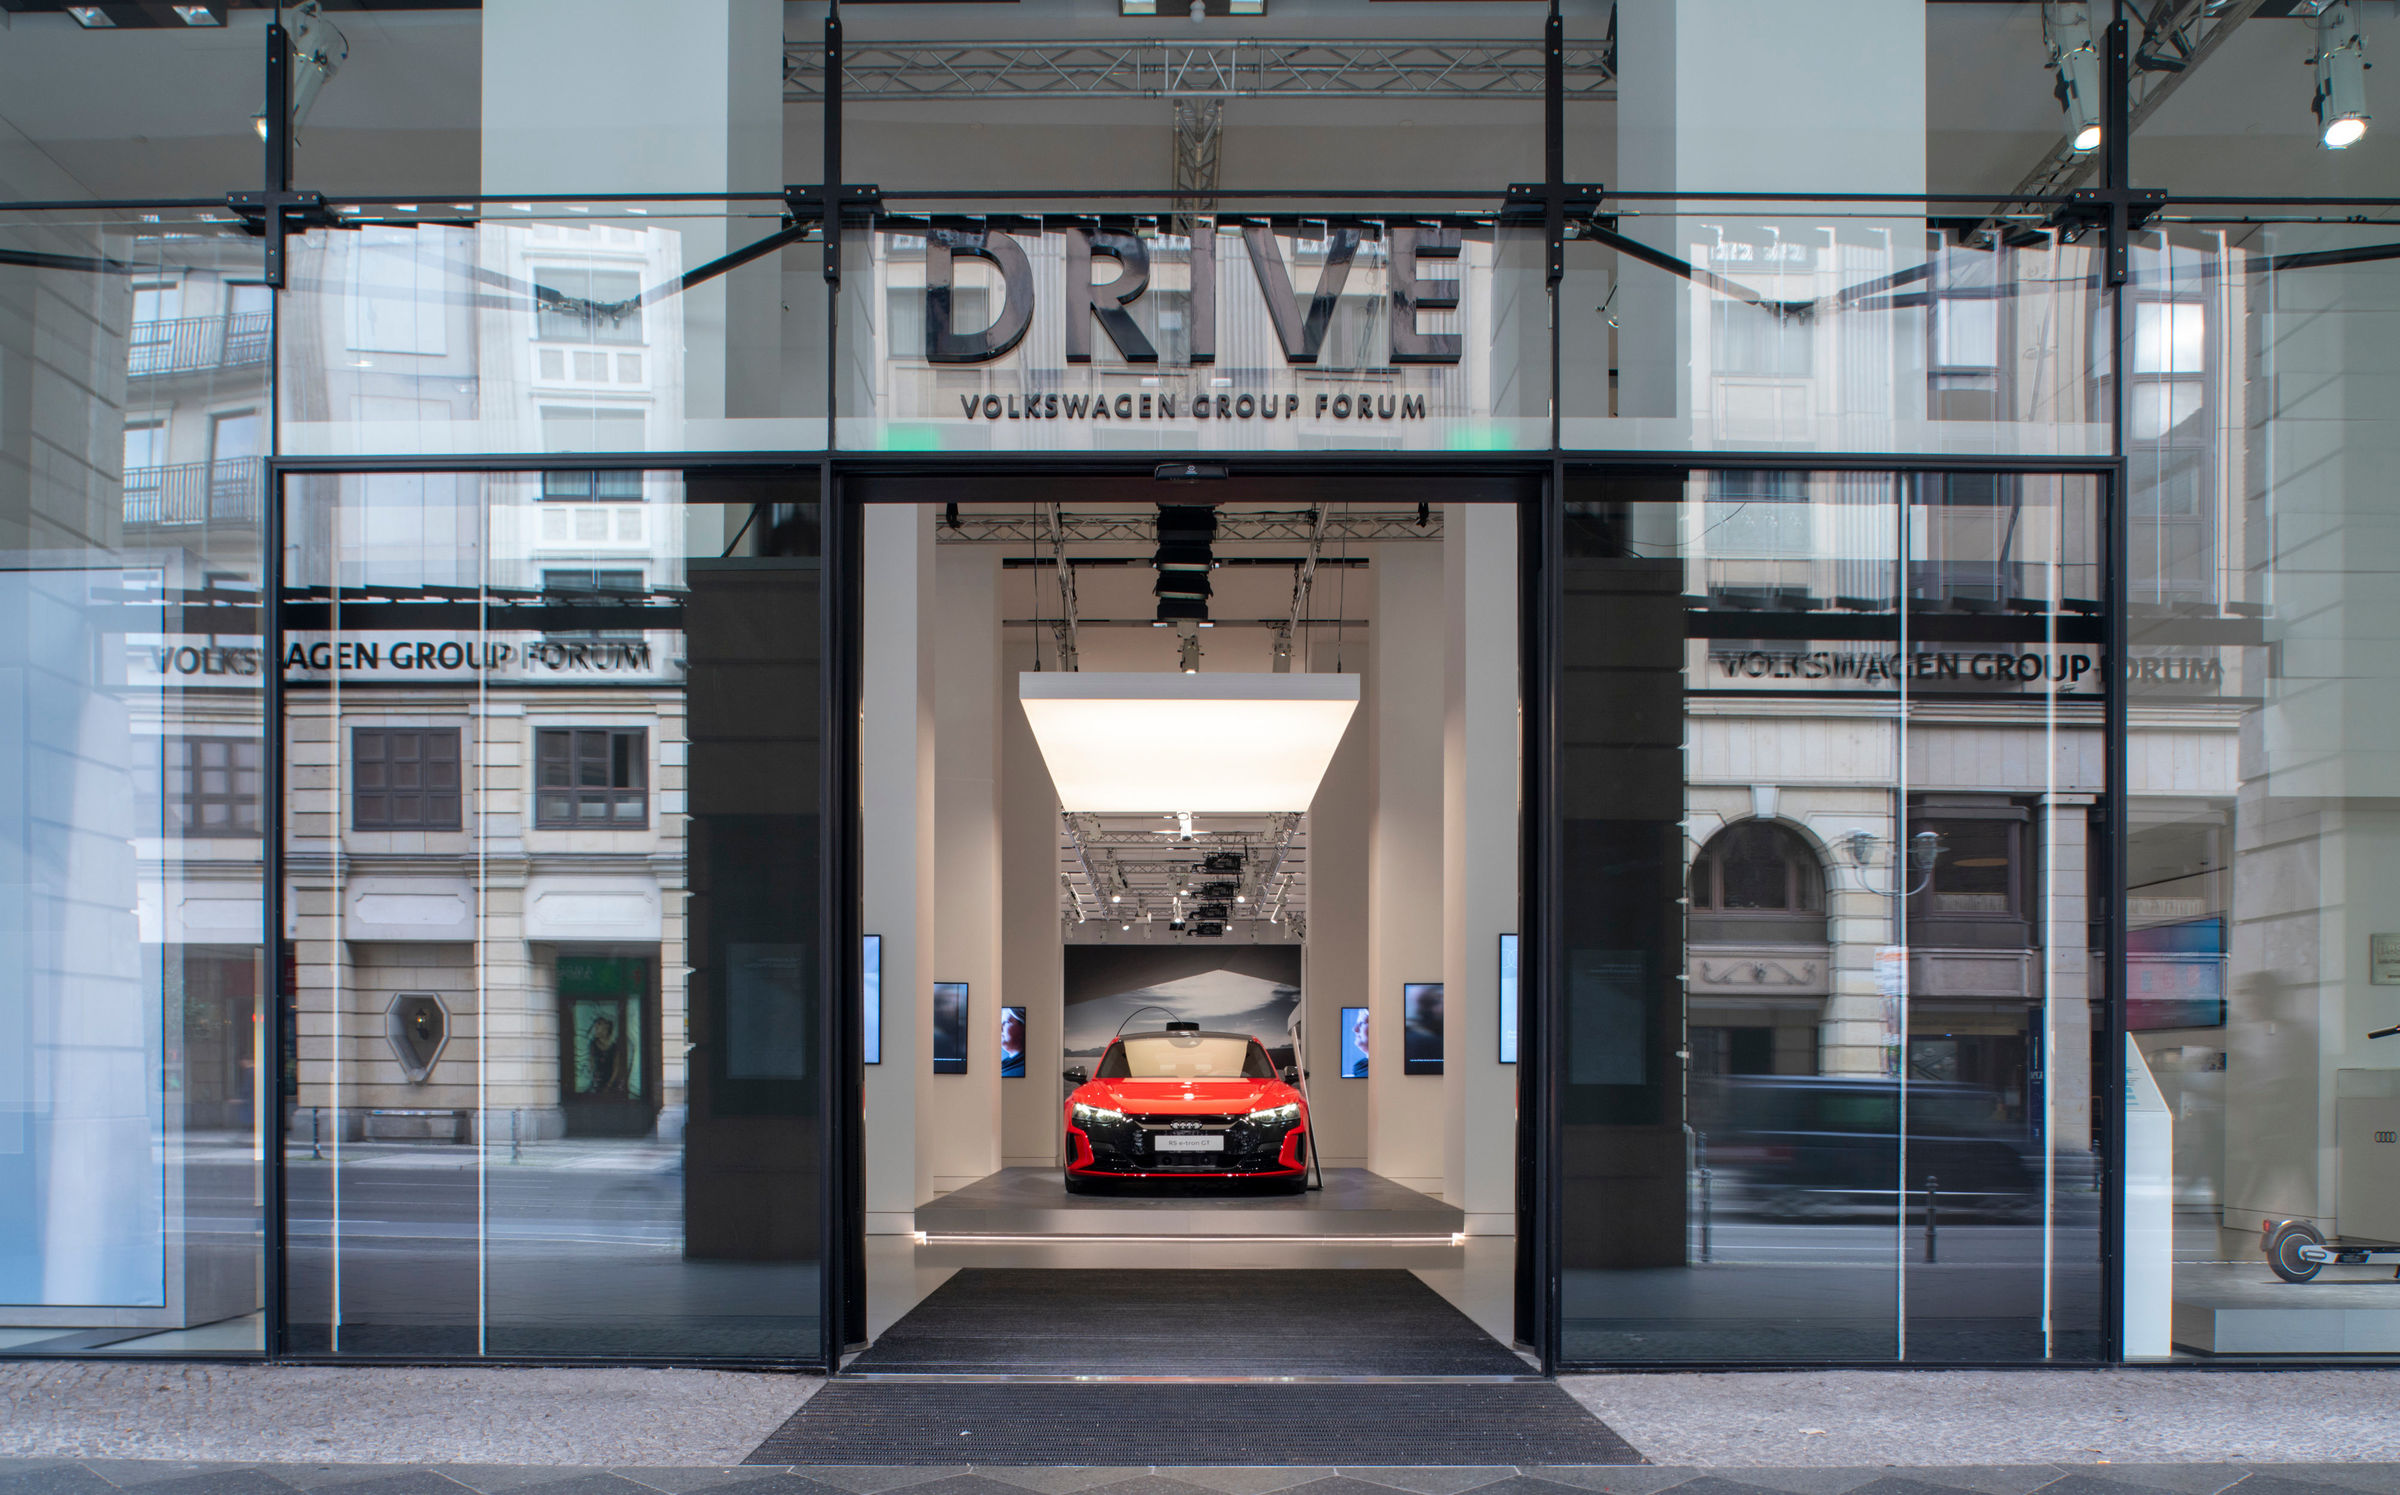 Audi opens a brand exhibition at DRIVE. Volkswagen Group Forum - Image 1